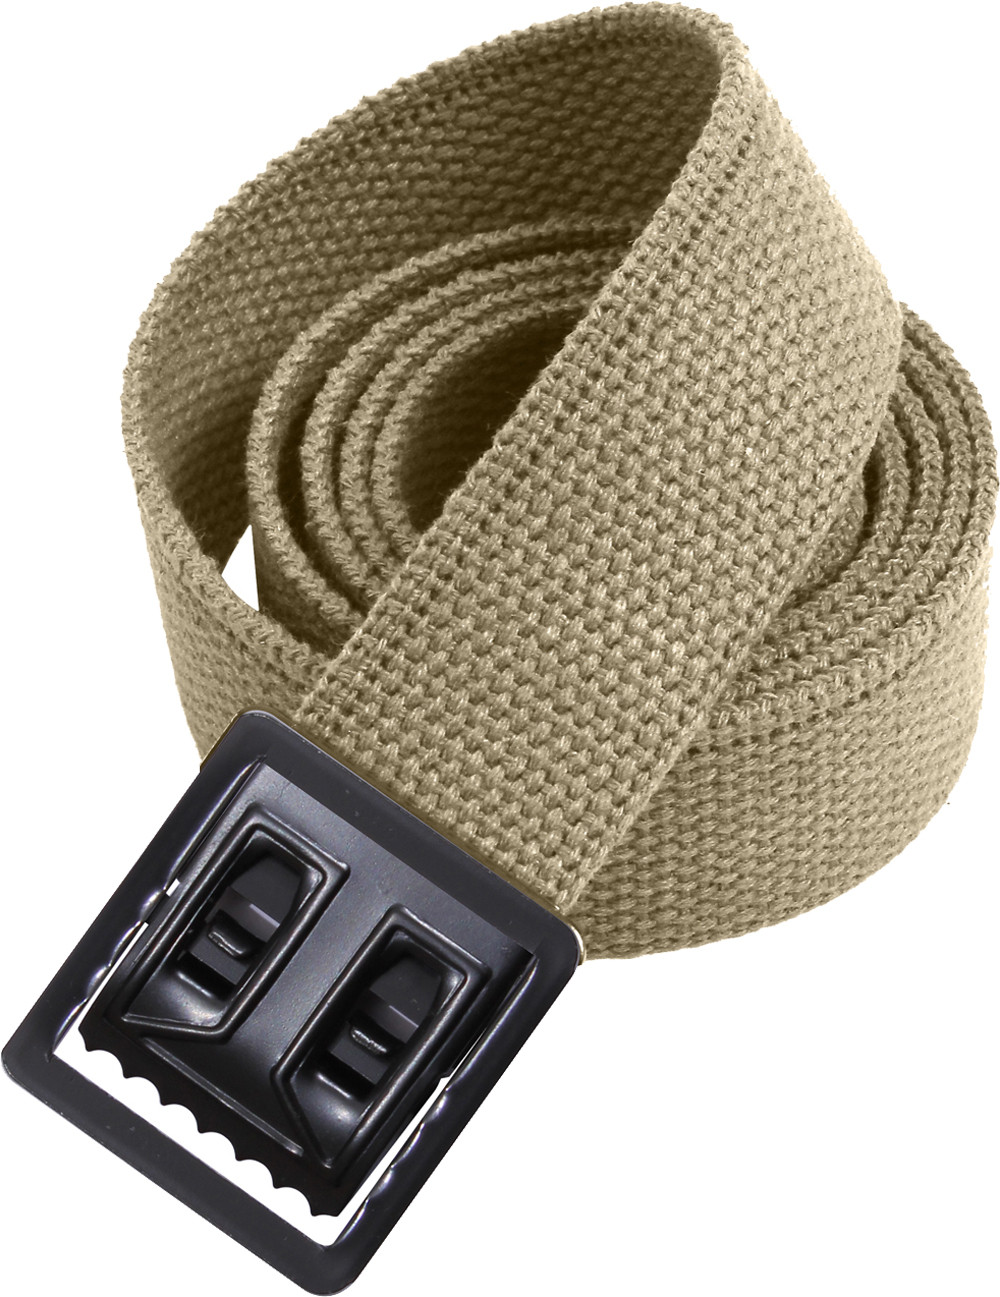 More Views. Khaki Military Cotton Web Belt   Black Open Face Buckle 23f92b4dabc